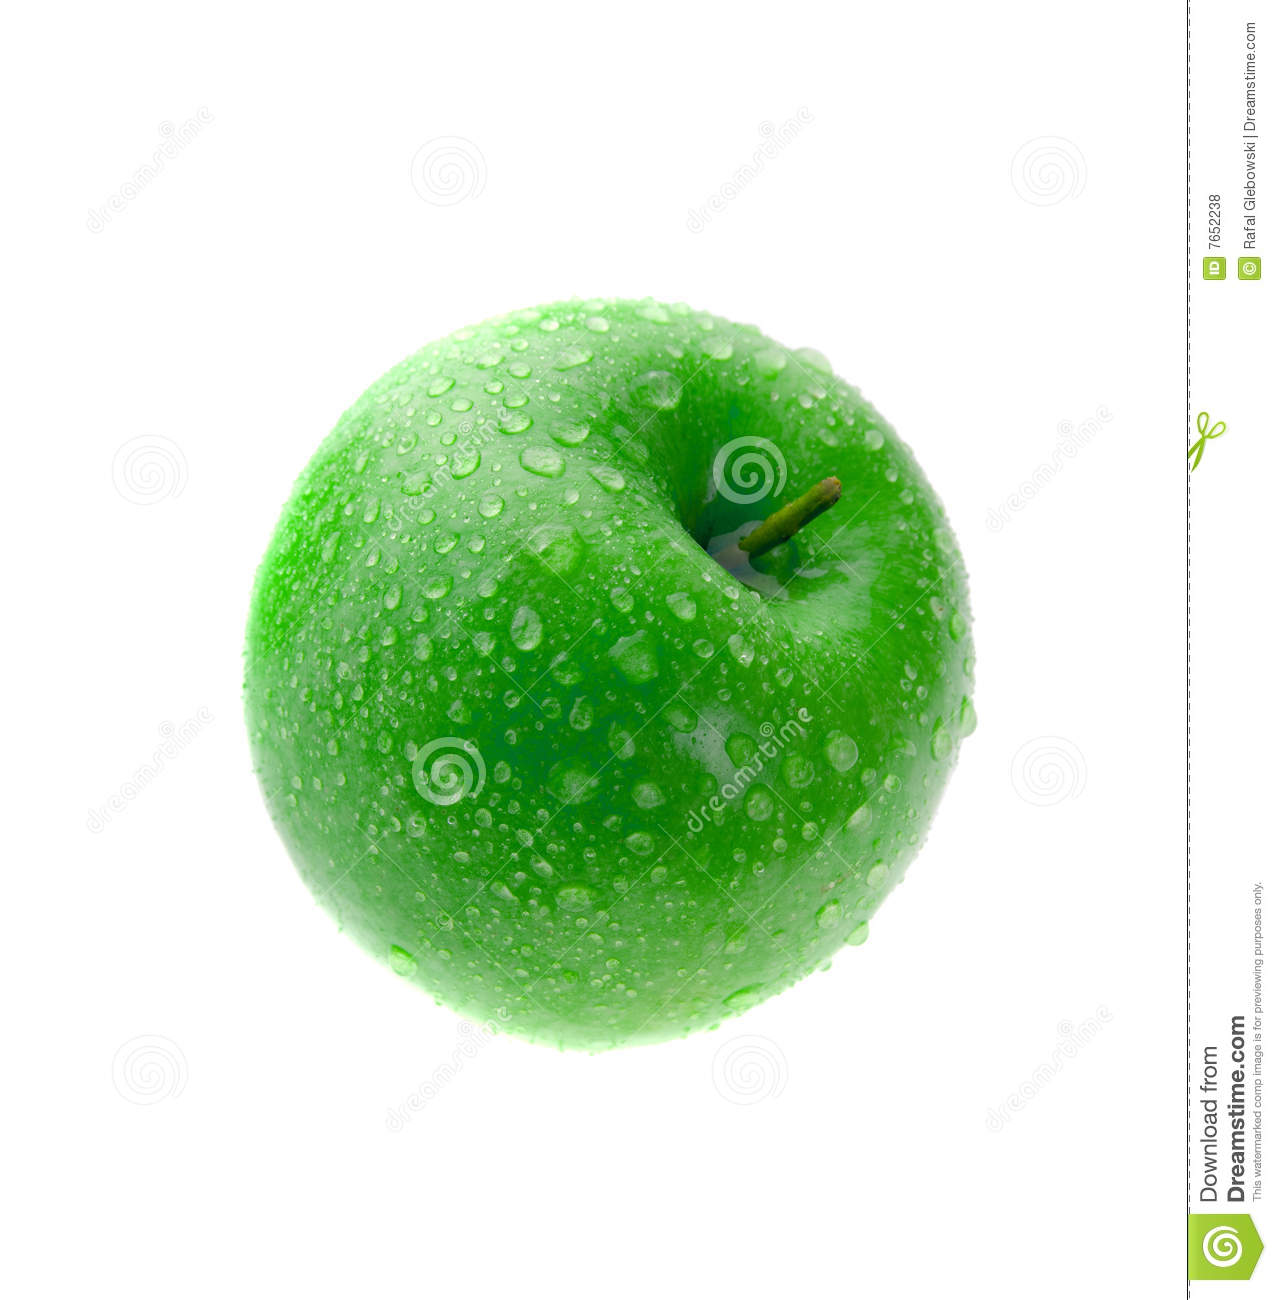 Wet green apple isolated on white